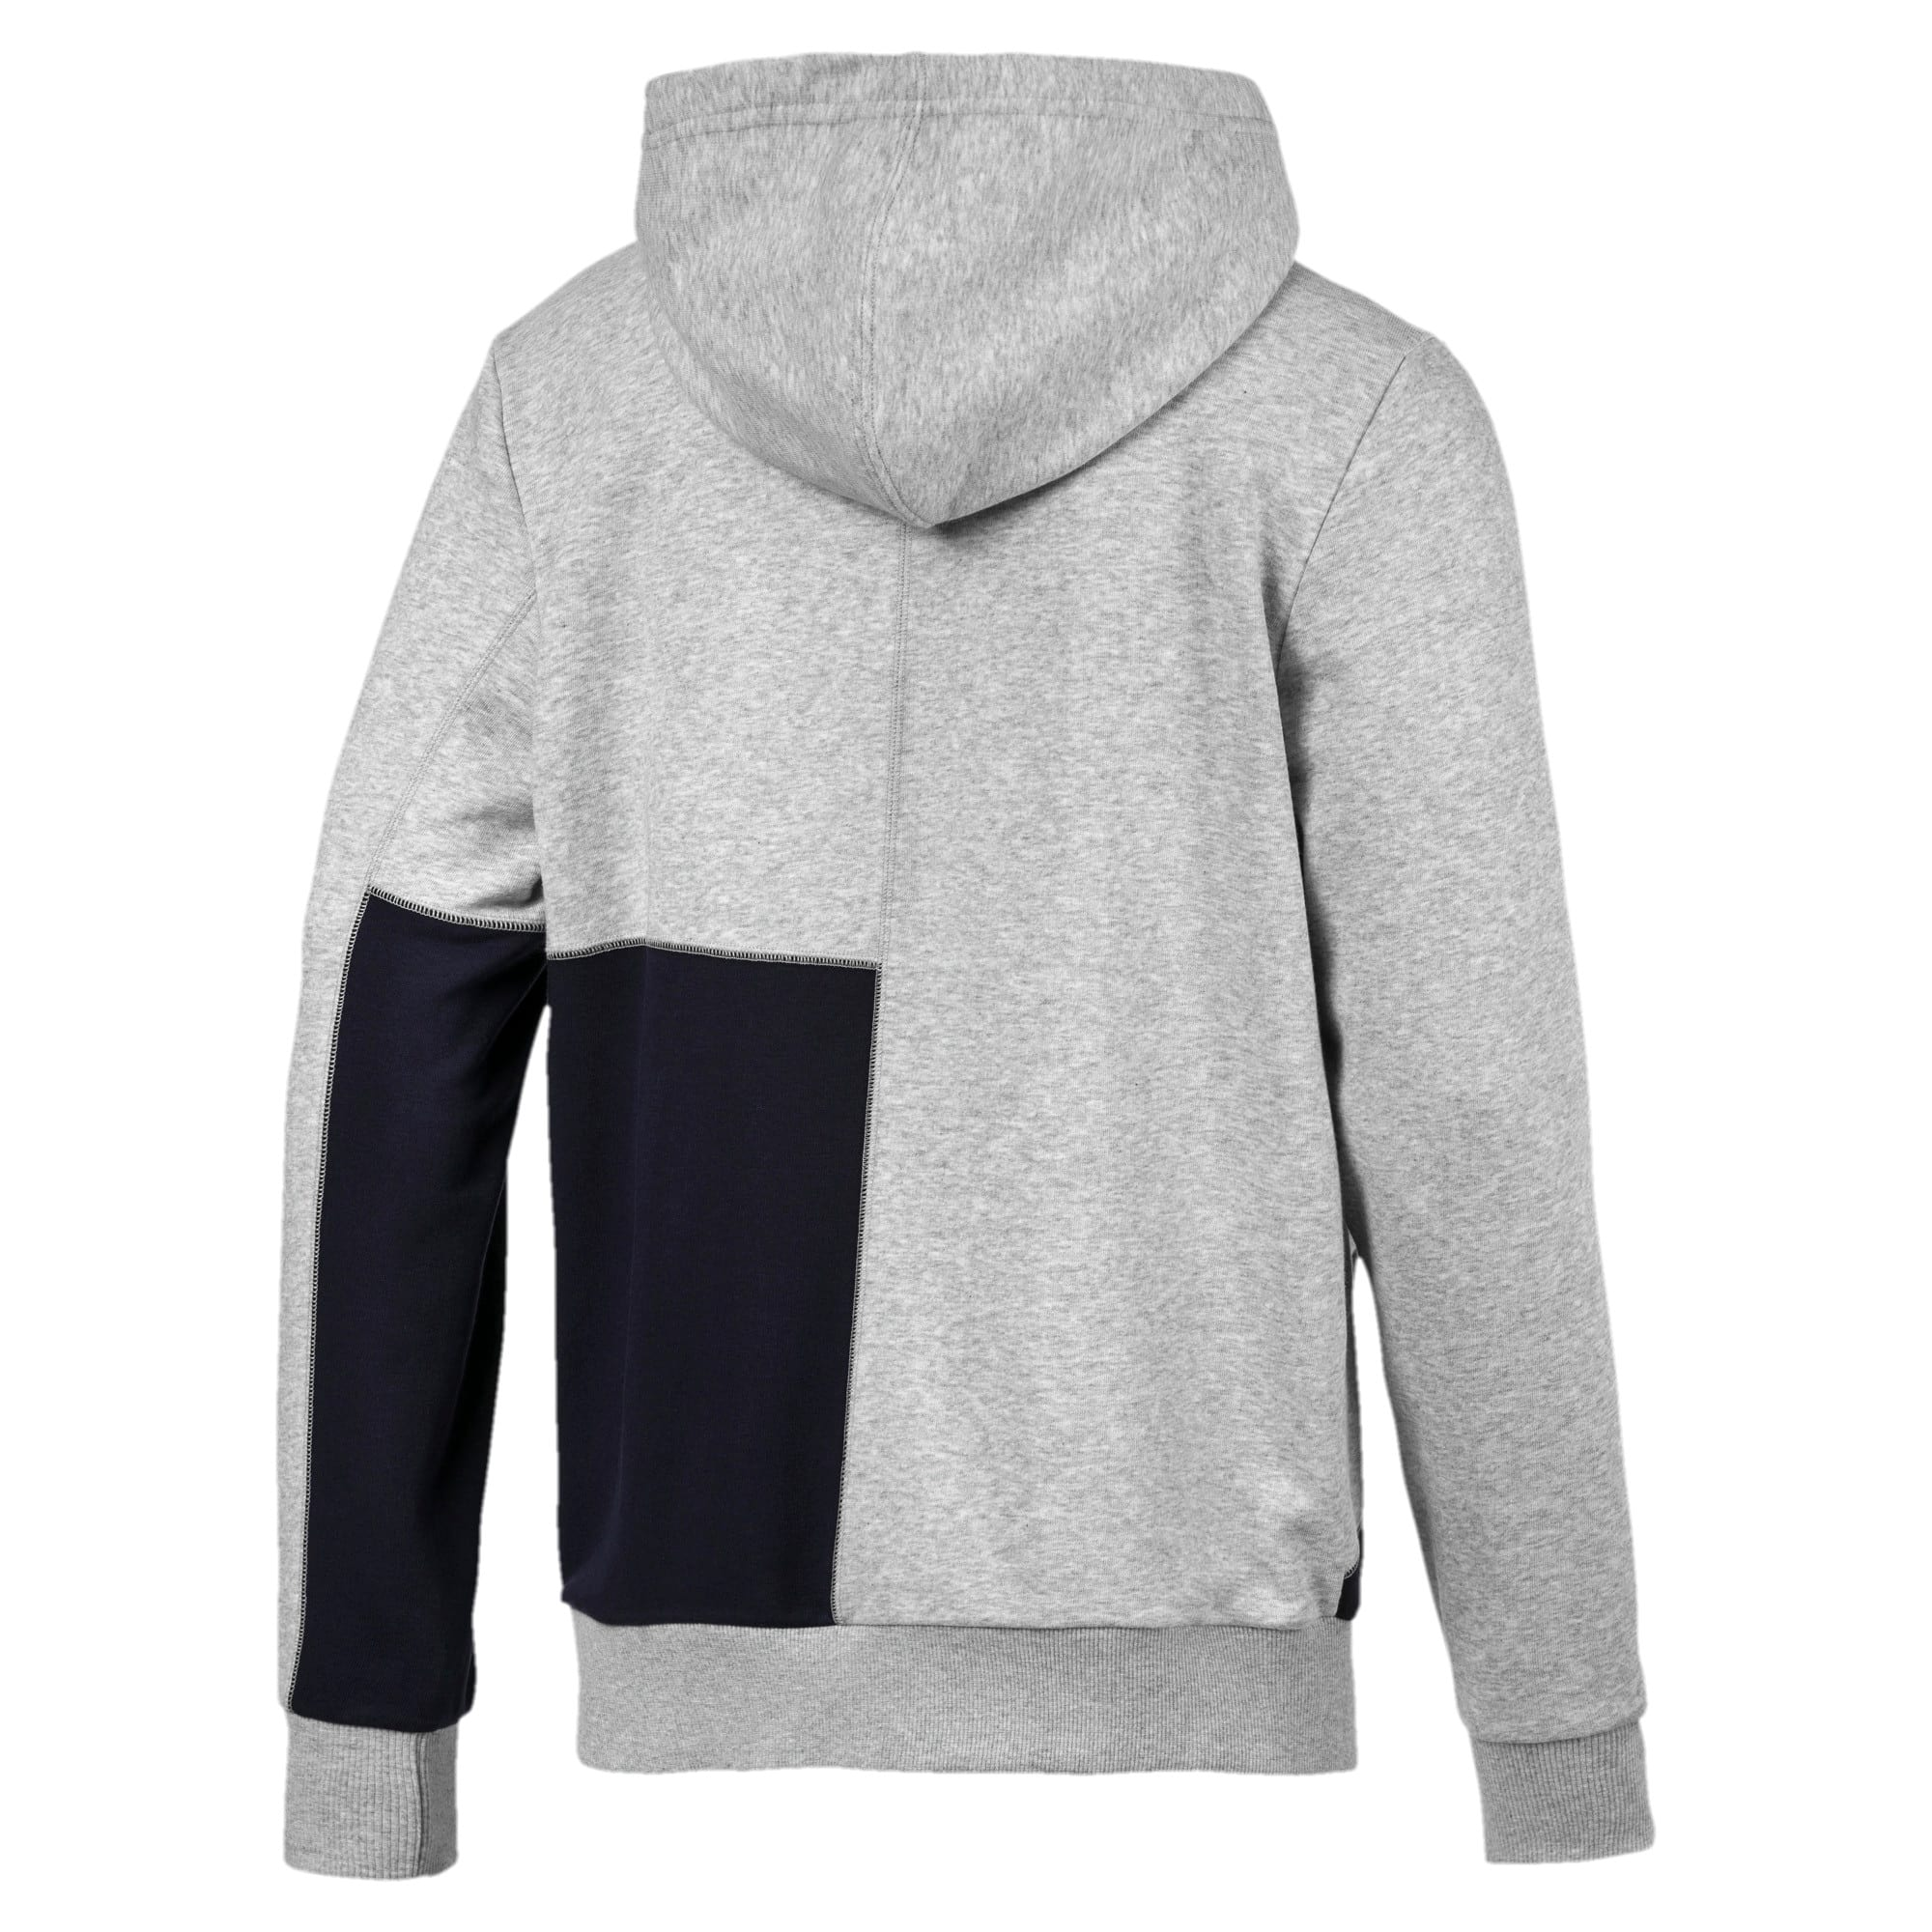 Thumbnail 6 of RBR Logo Hooded Men's Sweat Jacket, Light Gray Heather, medium